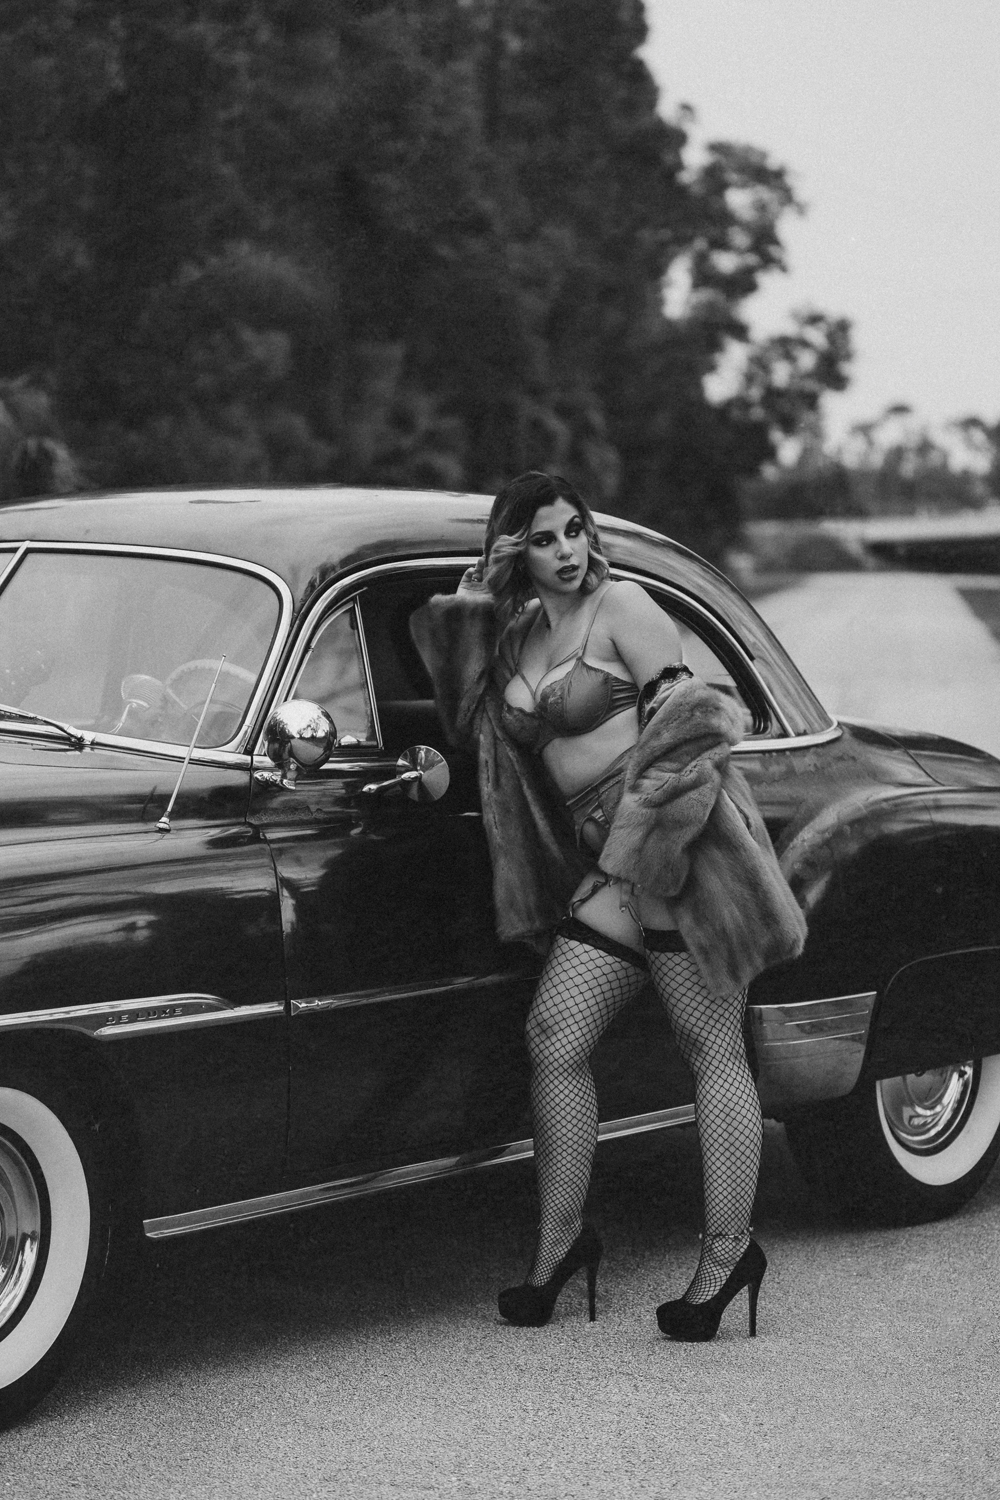 Naples Boudoir Photographer, black and white images of woman posing against a car